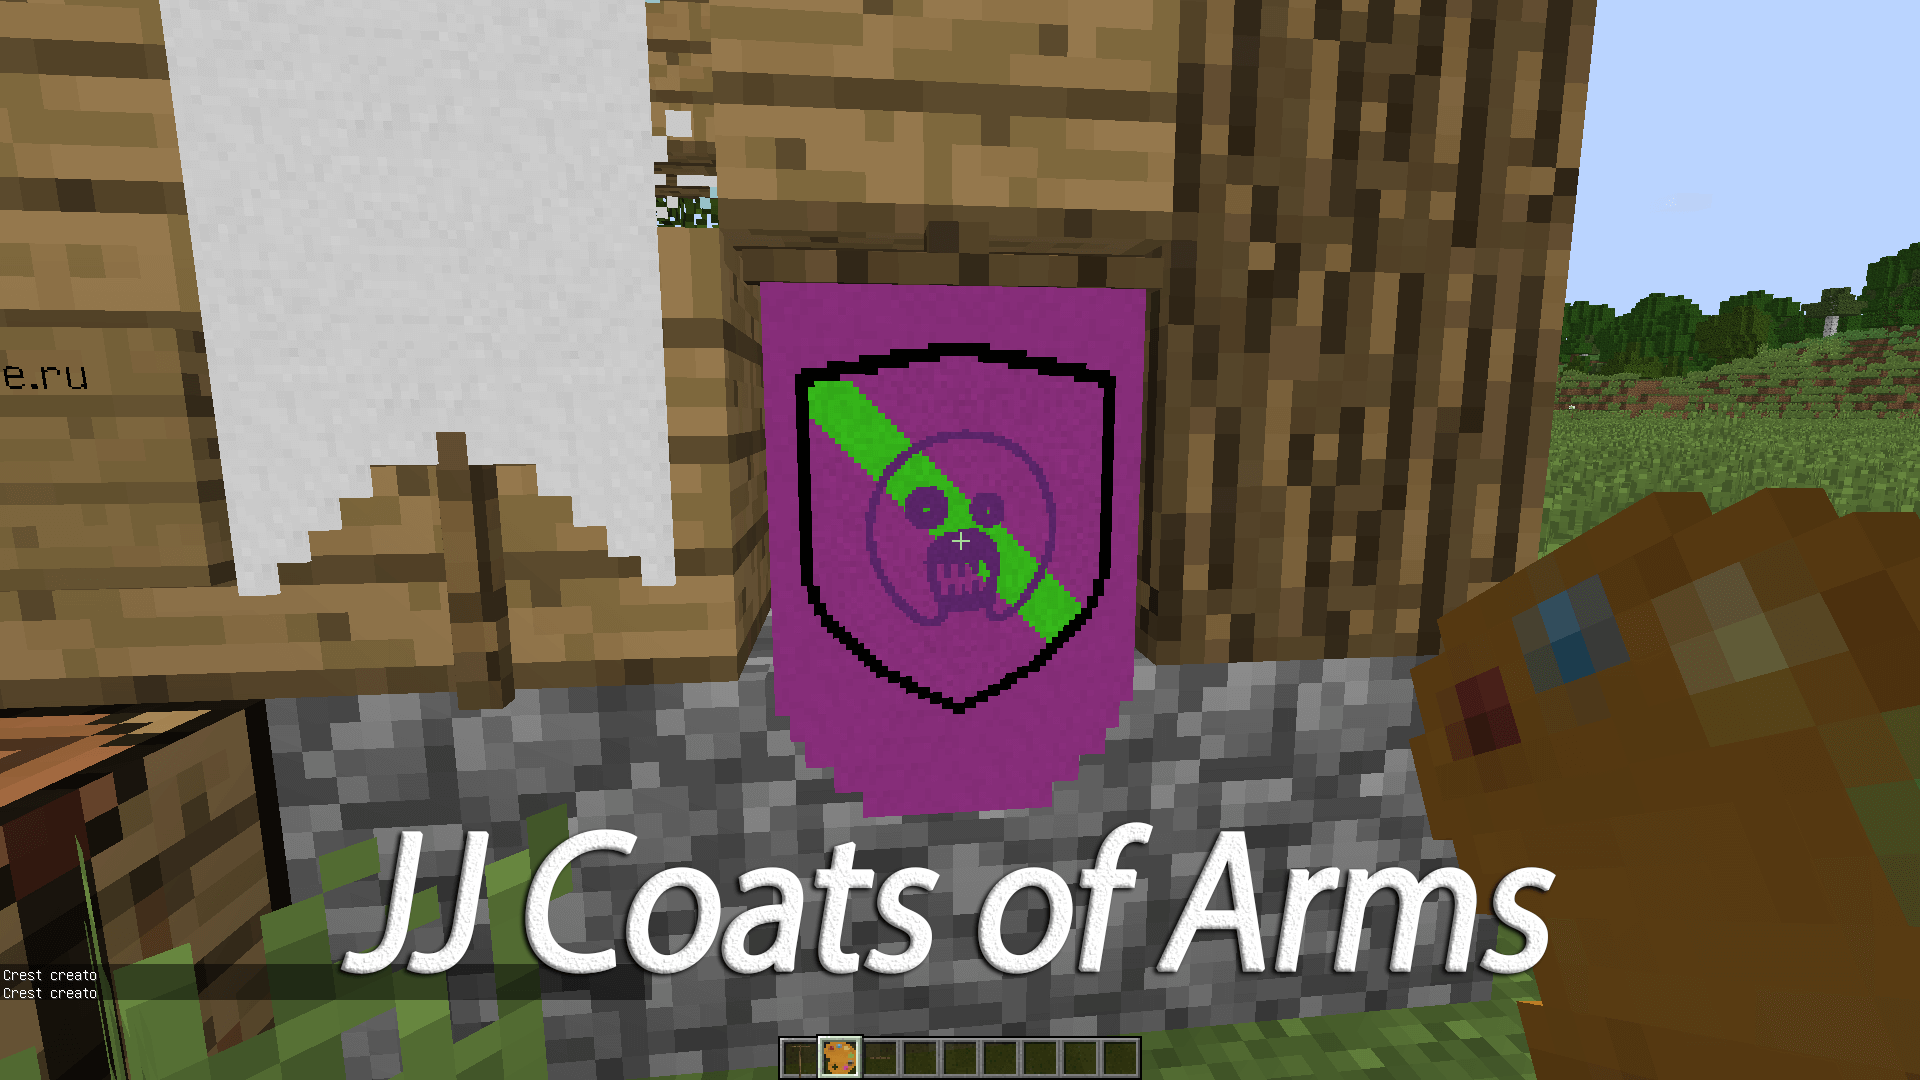 JJ Coats of Arms скриншот 1